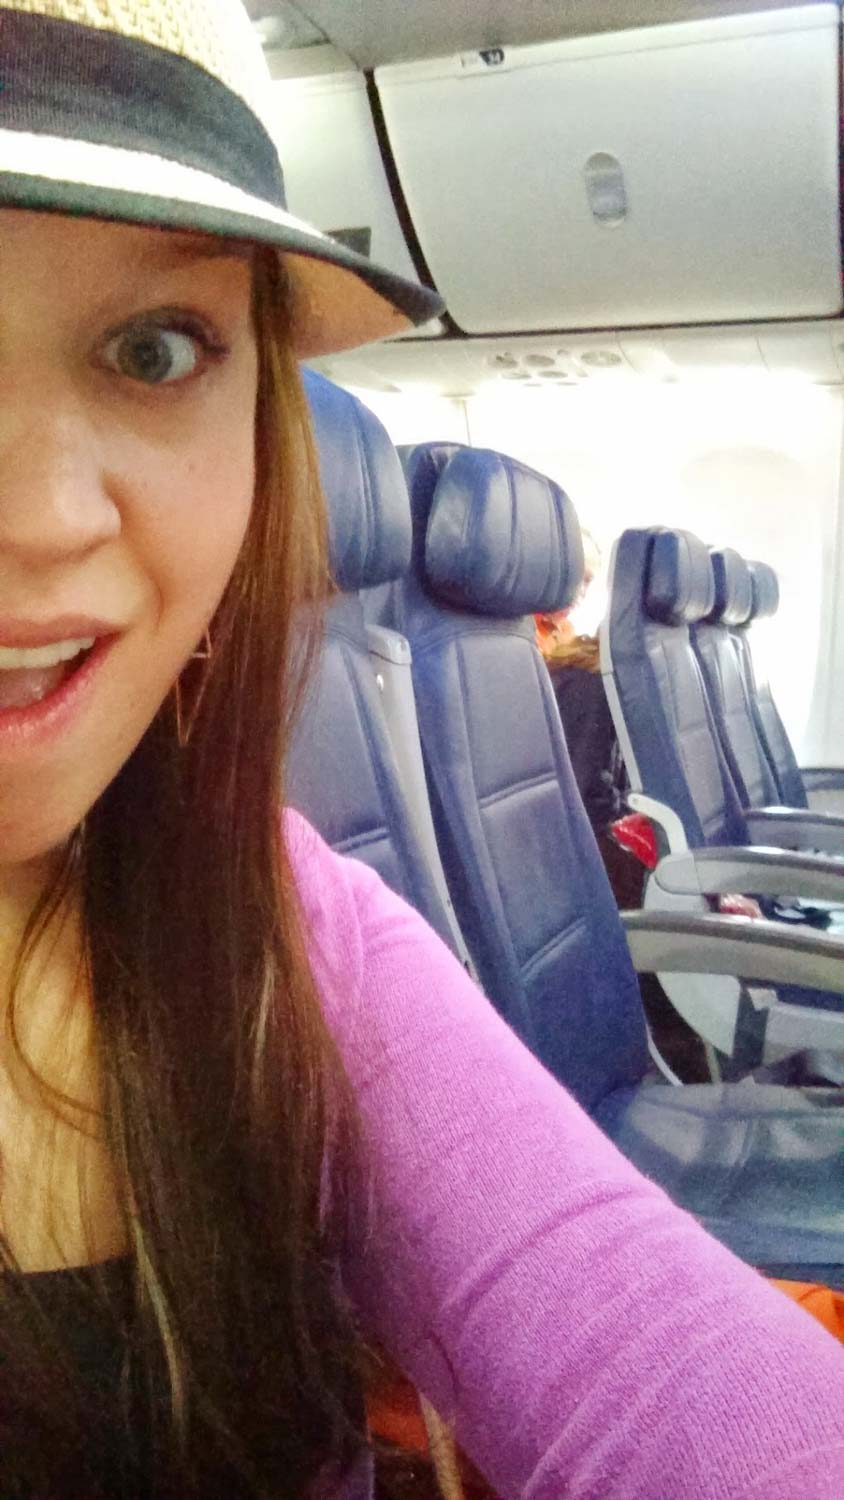 Empty Plane = Row to myself!